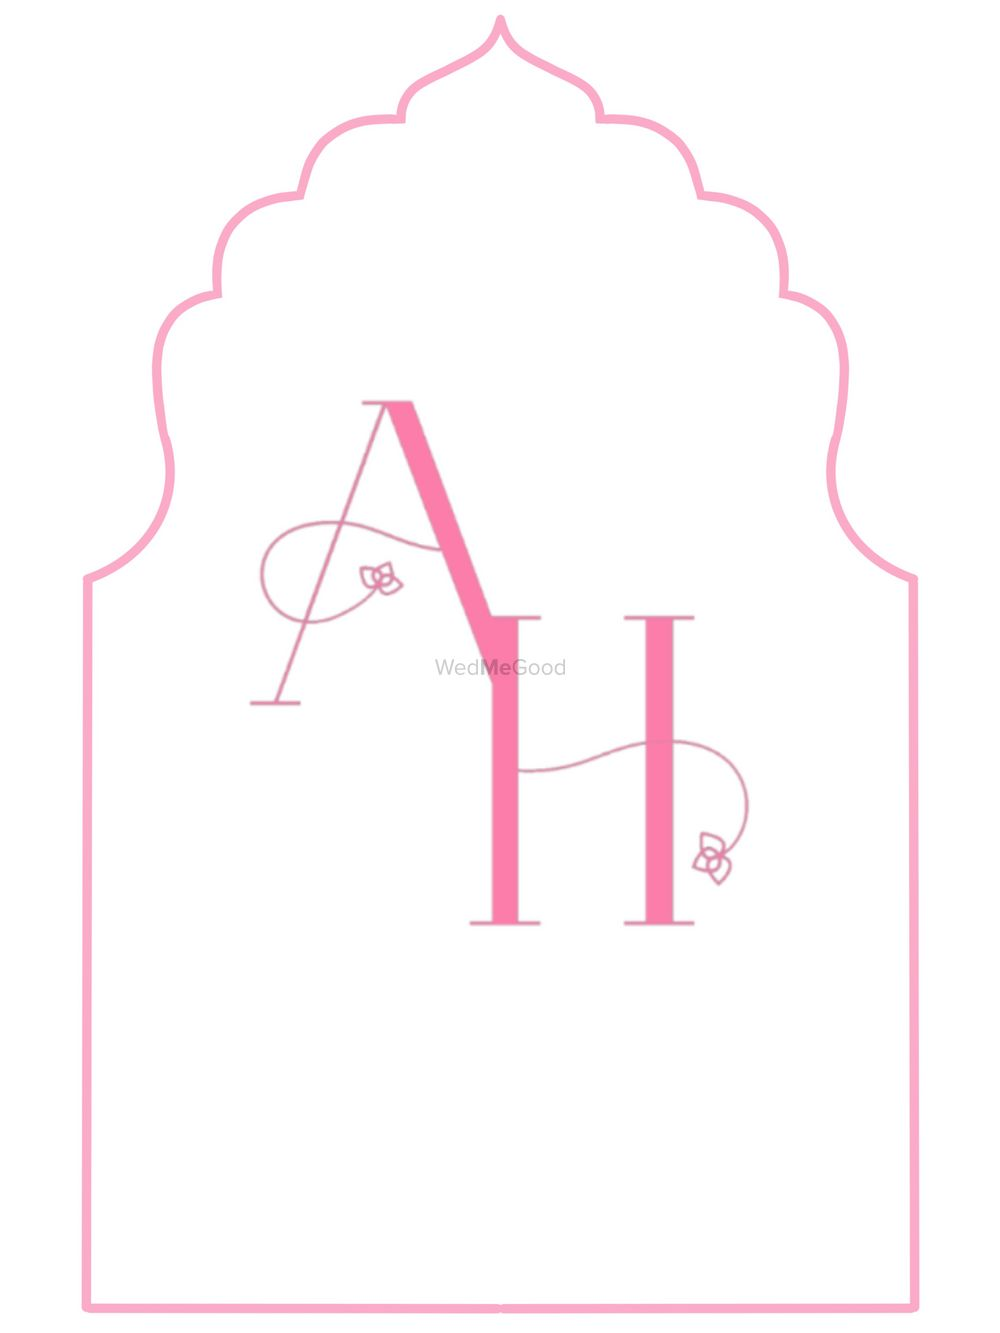 Photo From Monogram Design - By Pale Pink Studio